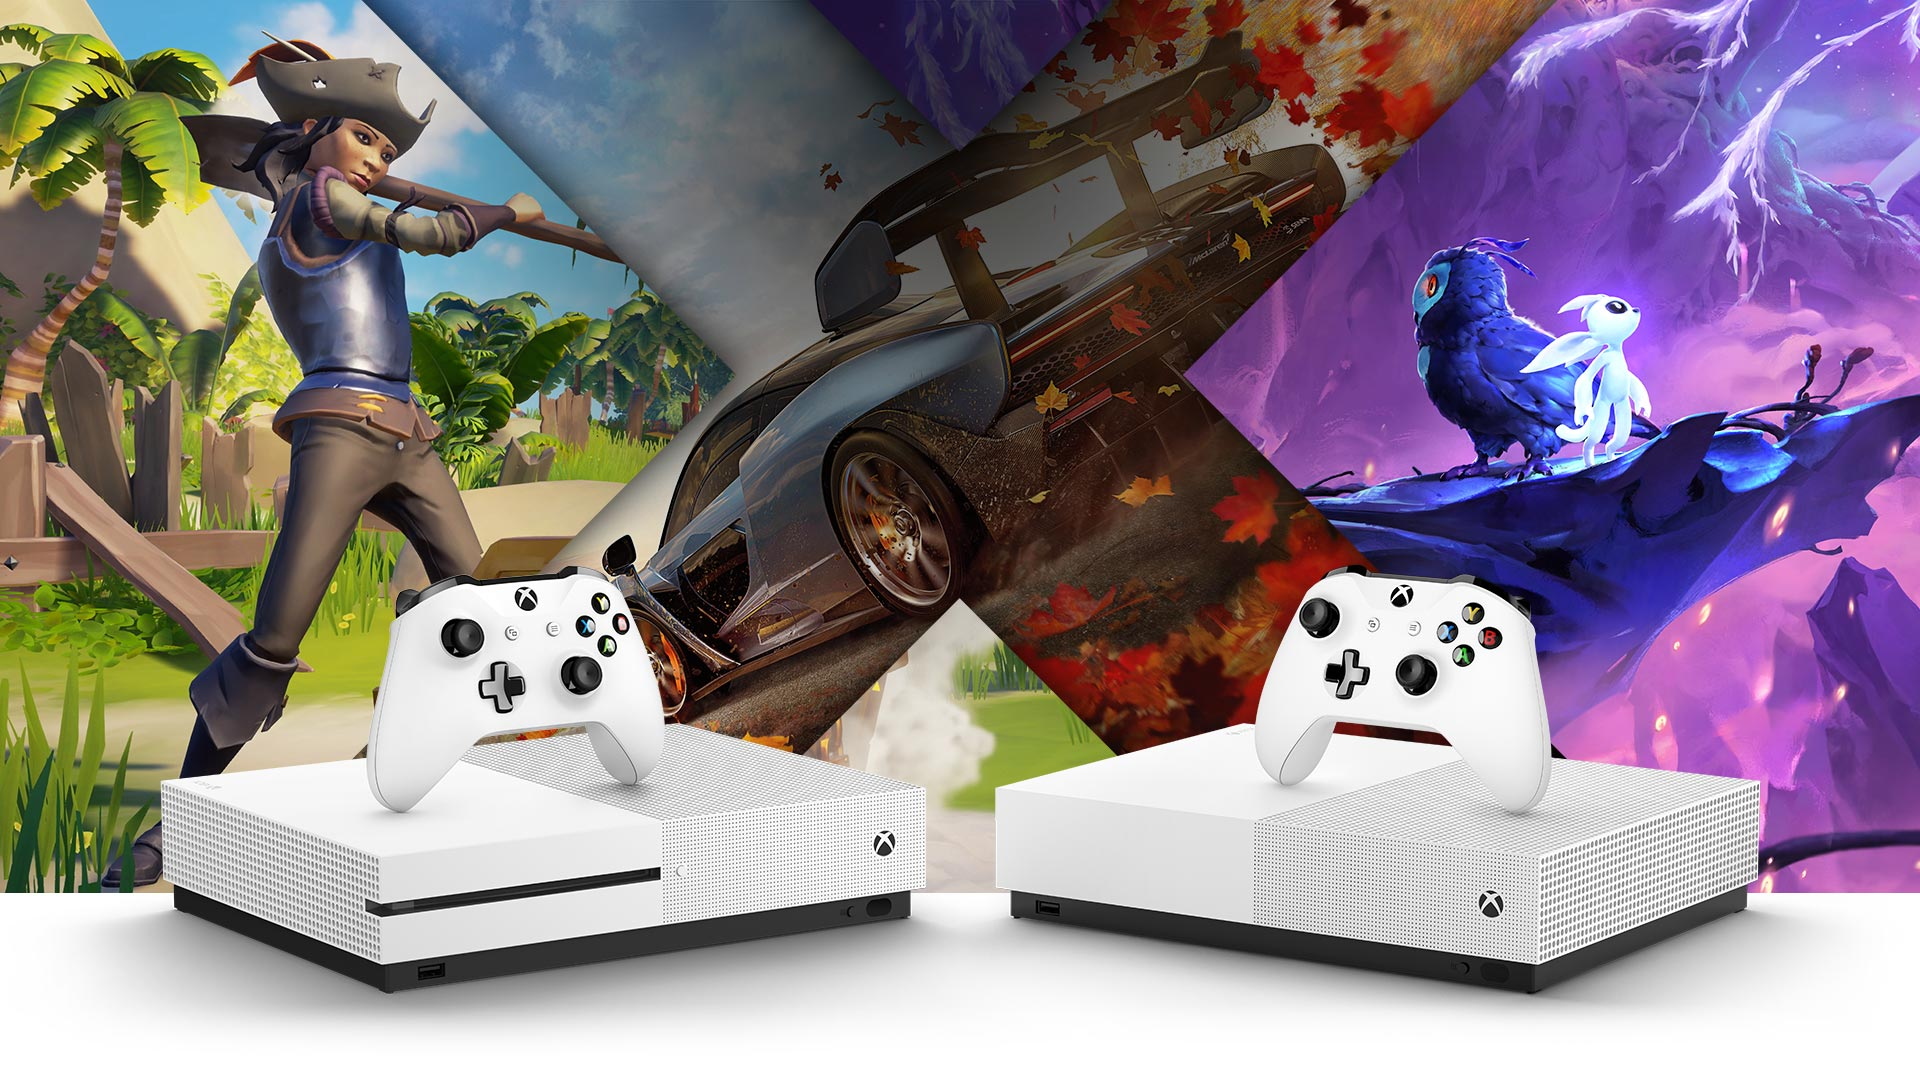 Vue de face des consoles Xbox One S et Xbox One S All Digital entourées d'illustrations de Sea of Thieves, Forza Horizon 4, Ori and the Will of Wisps.